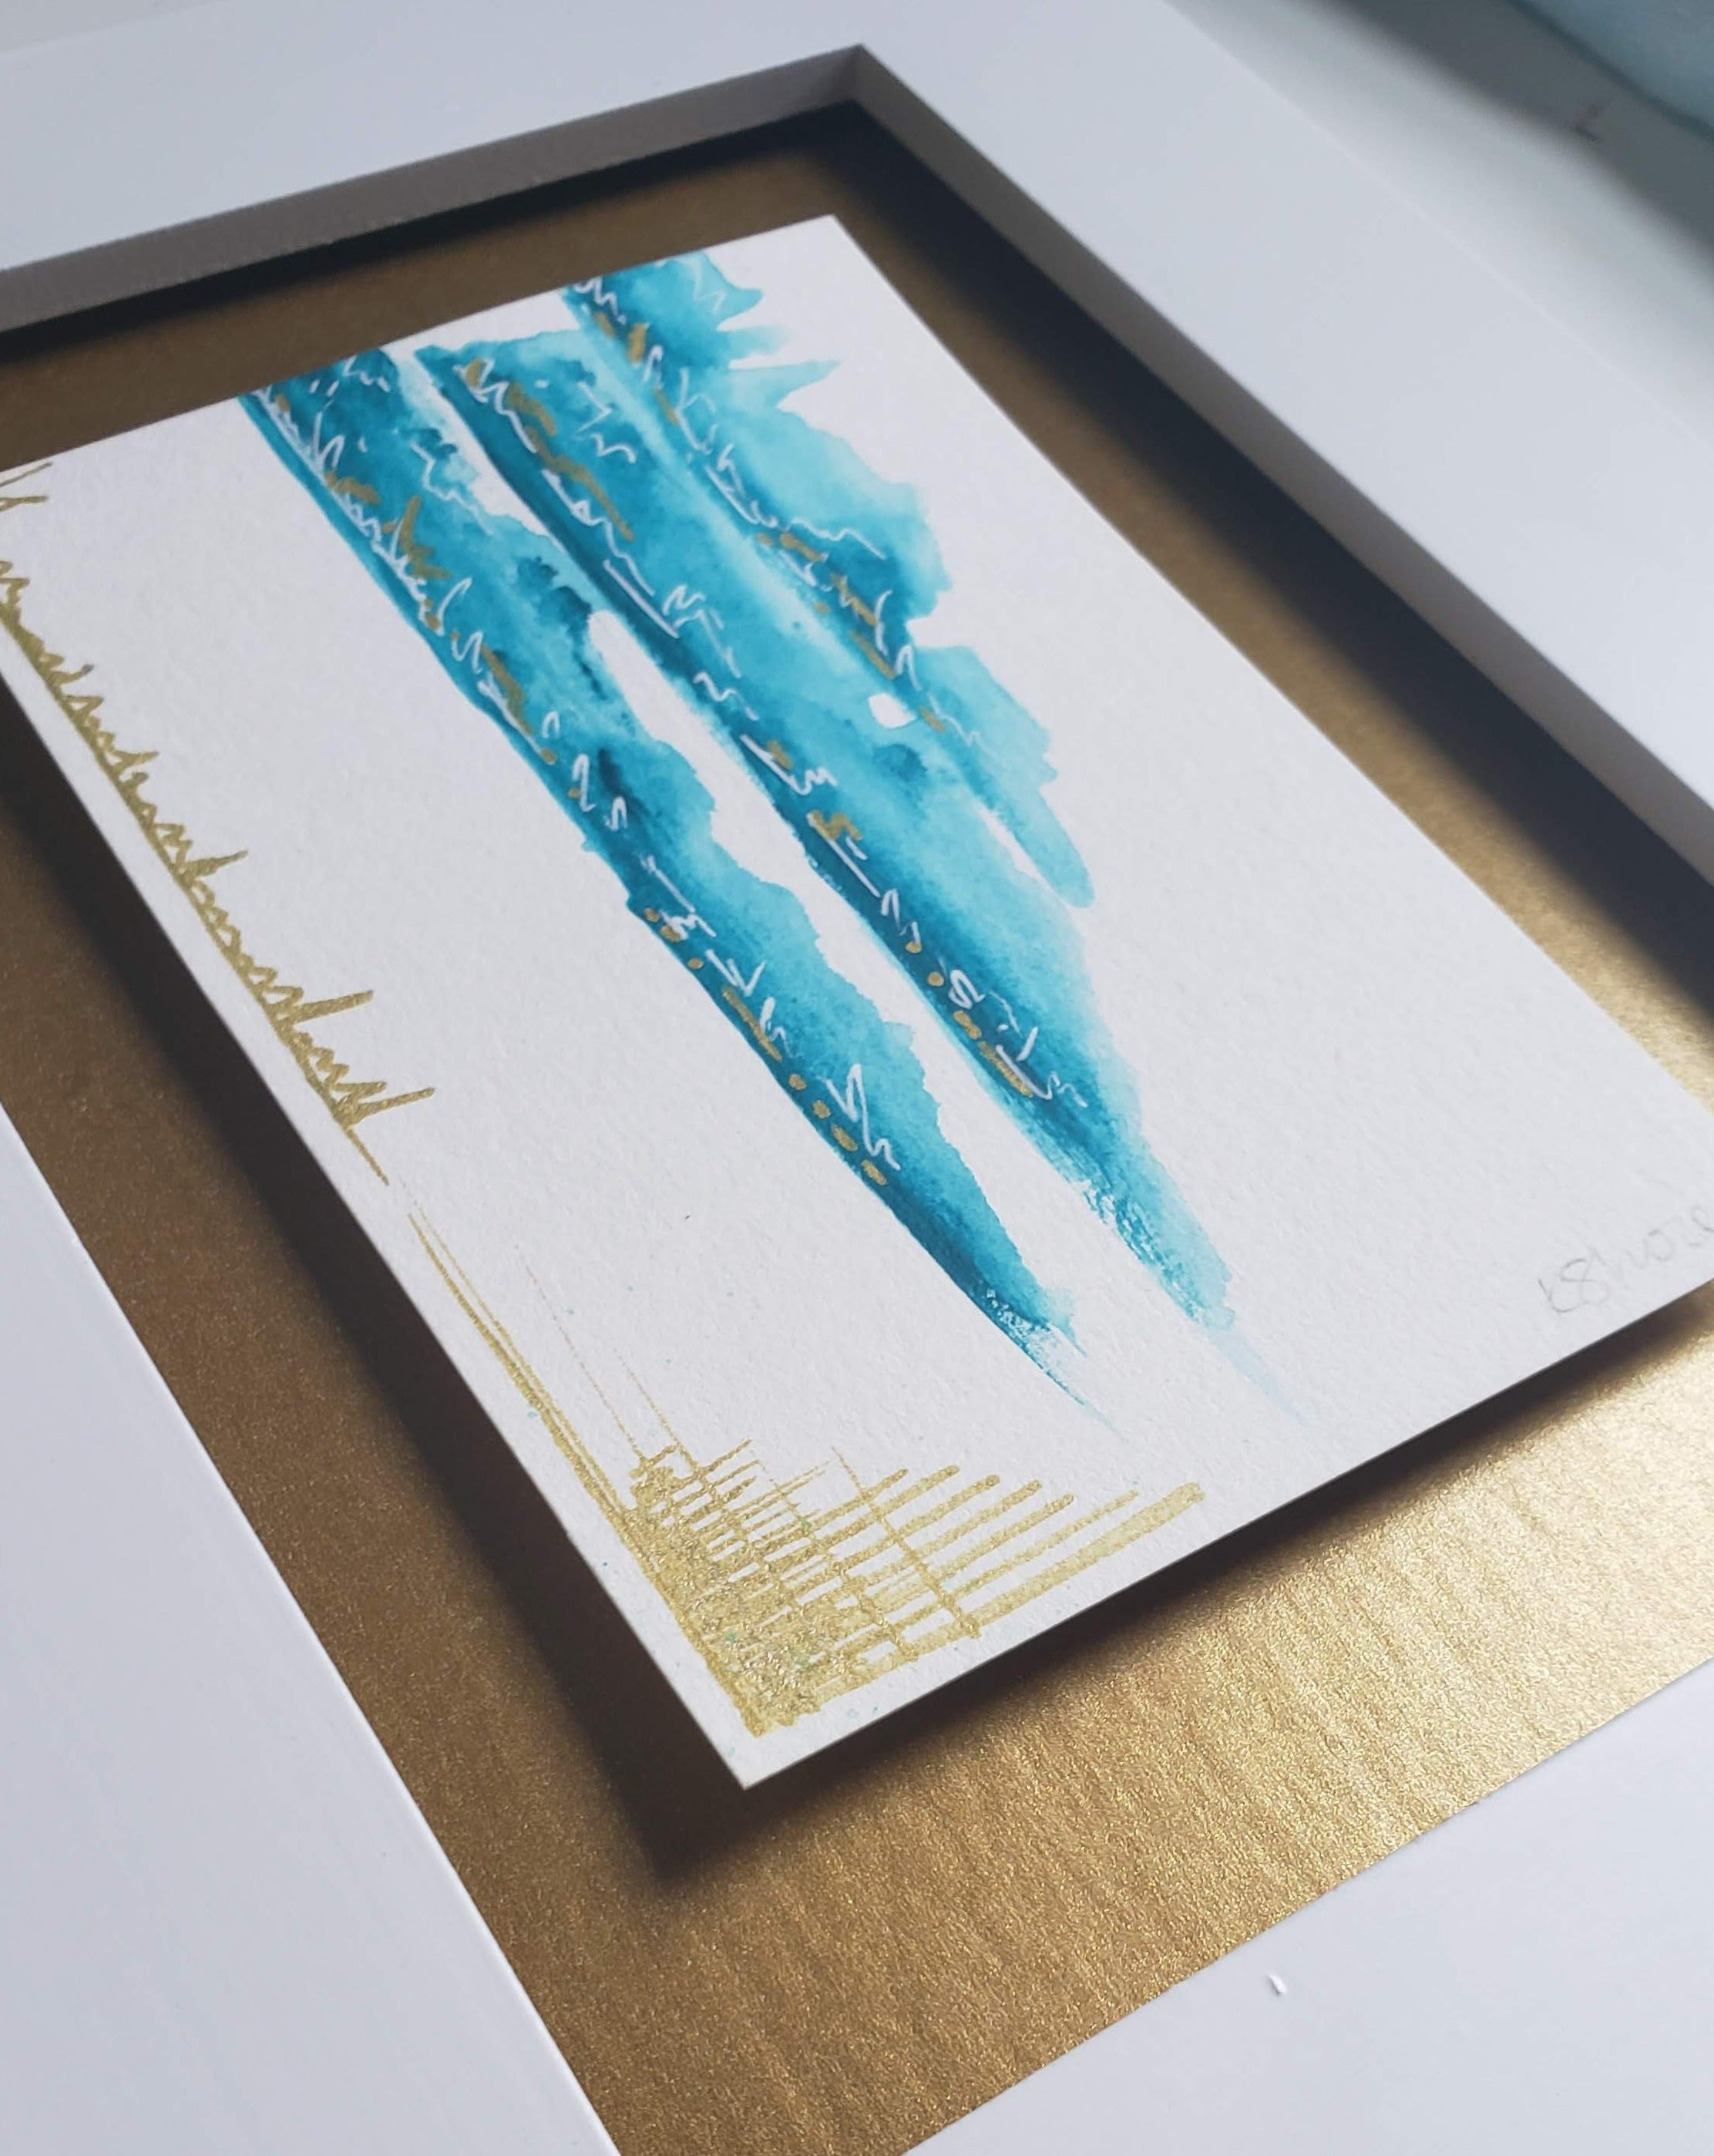 Framed Mini Teal Abstract Painting on Paper | 100 Day Project